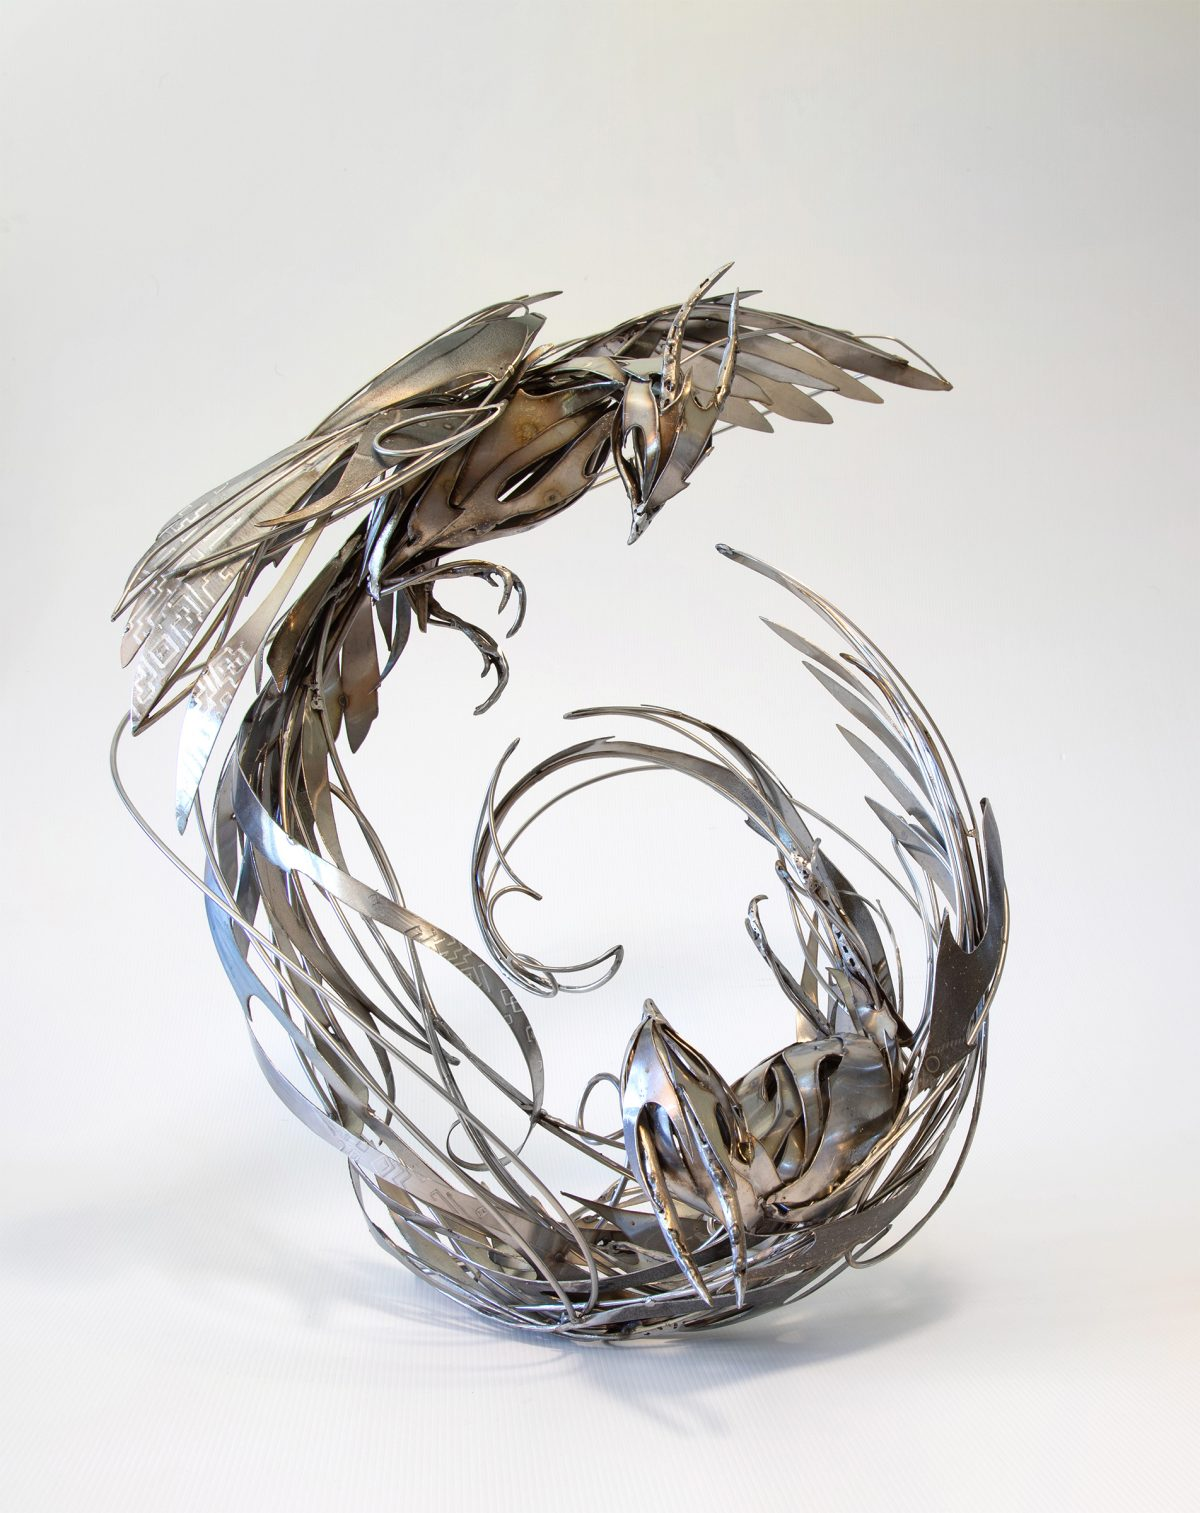 Welded Stainless Steel Creatures by Georgie Seccull Twist and Unfurl in Eternal Motion